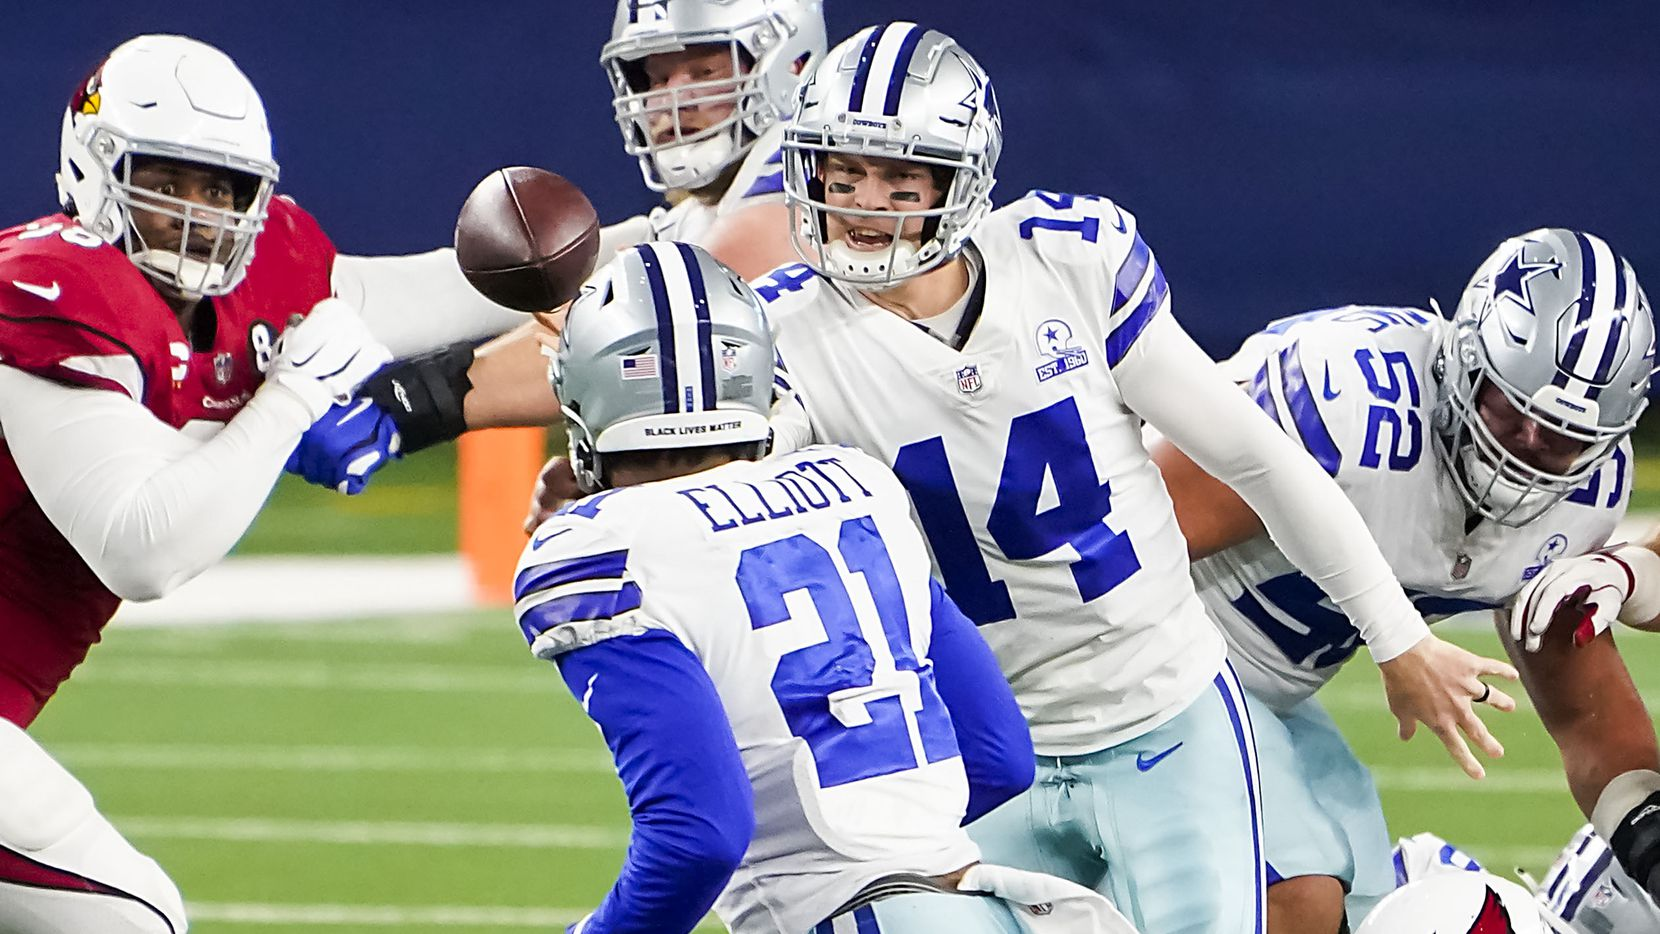 Dallas Cowboys quarterback Andy Dalton (14) gets off a shuffle pass to running back Ezekiel Elliott (21) during the first quarter of an NFL football game against the Arizona Cardinals at AT&T Stadium on Monday, Oct. 19, 2020, in Arlington.